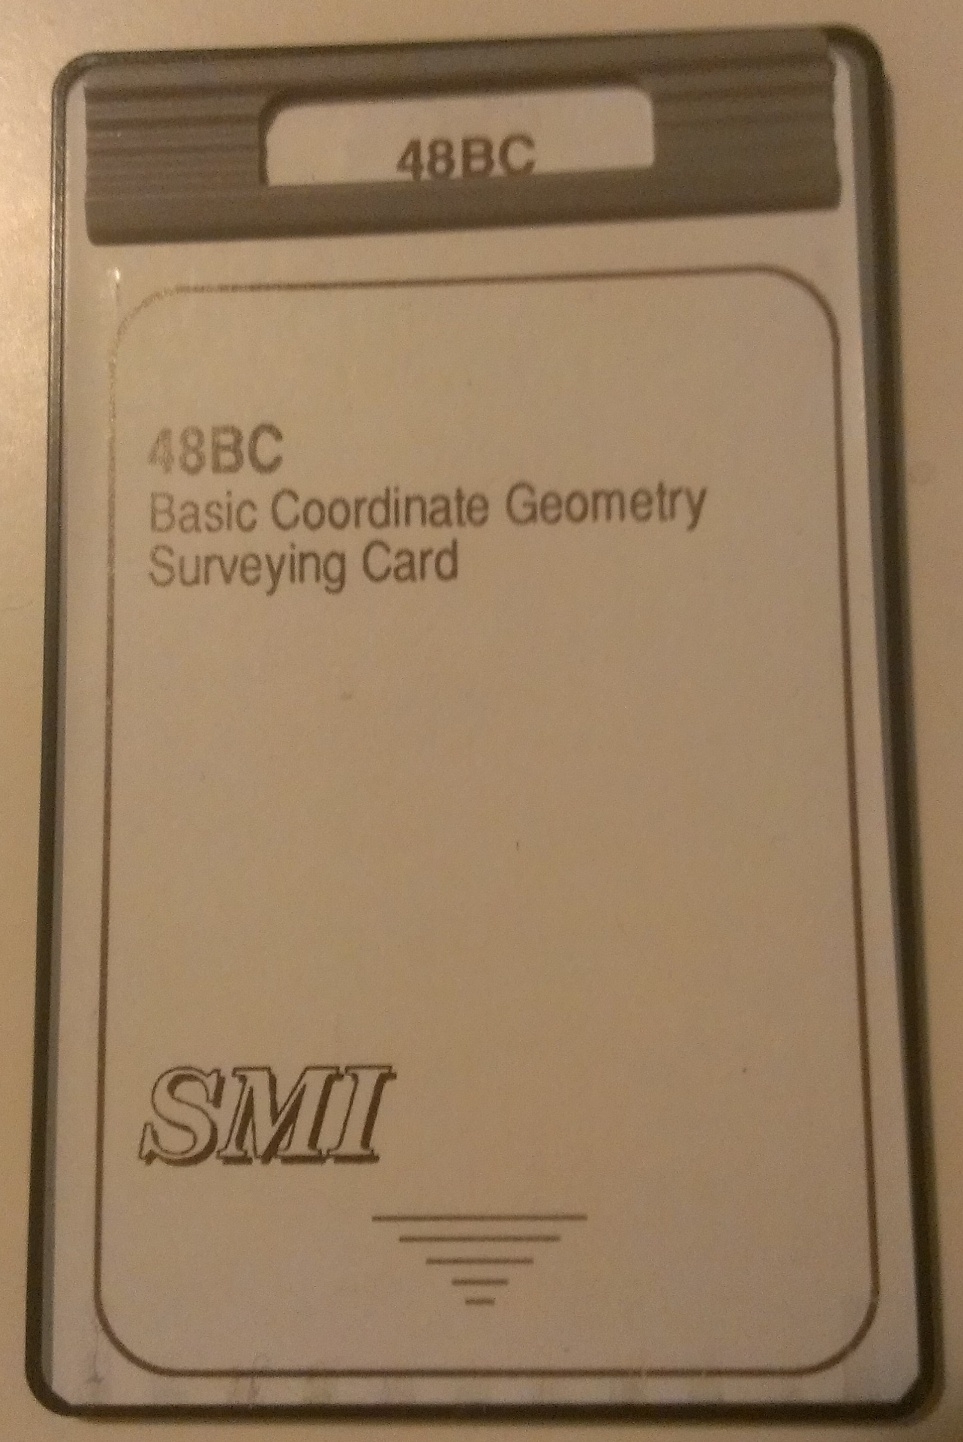 smi-used-48bc-basic-coordinate-geometry-surveying-card